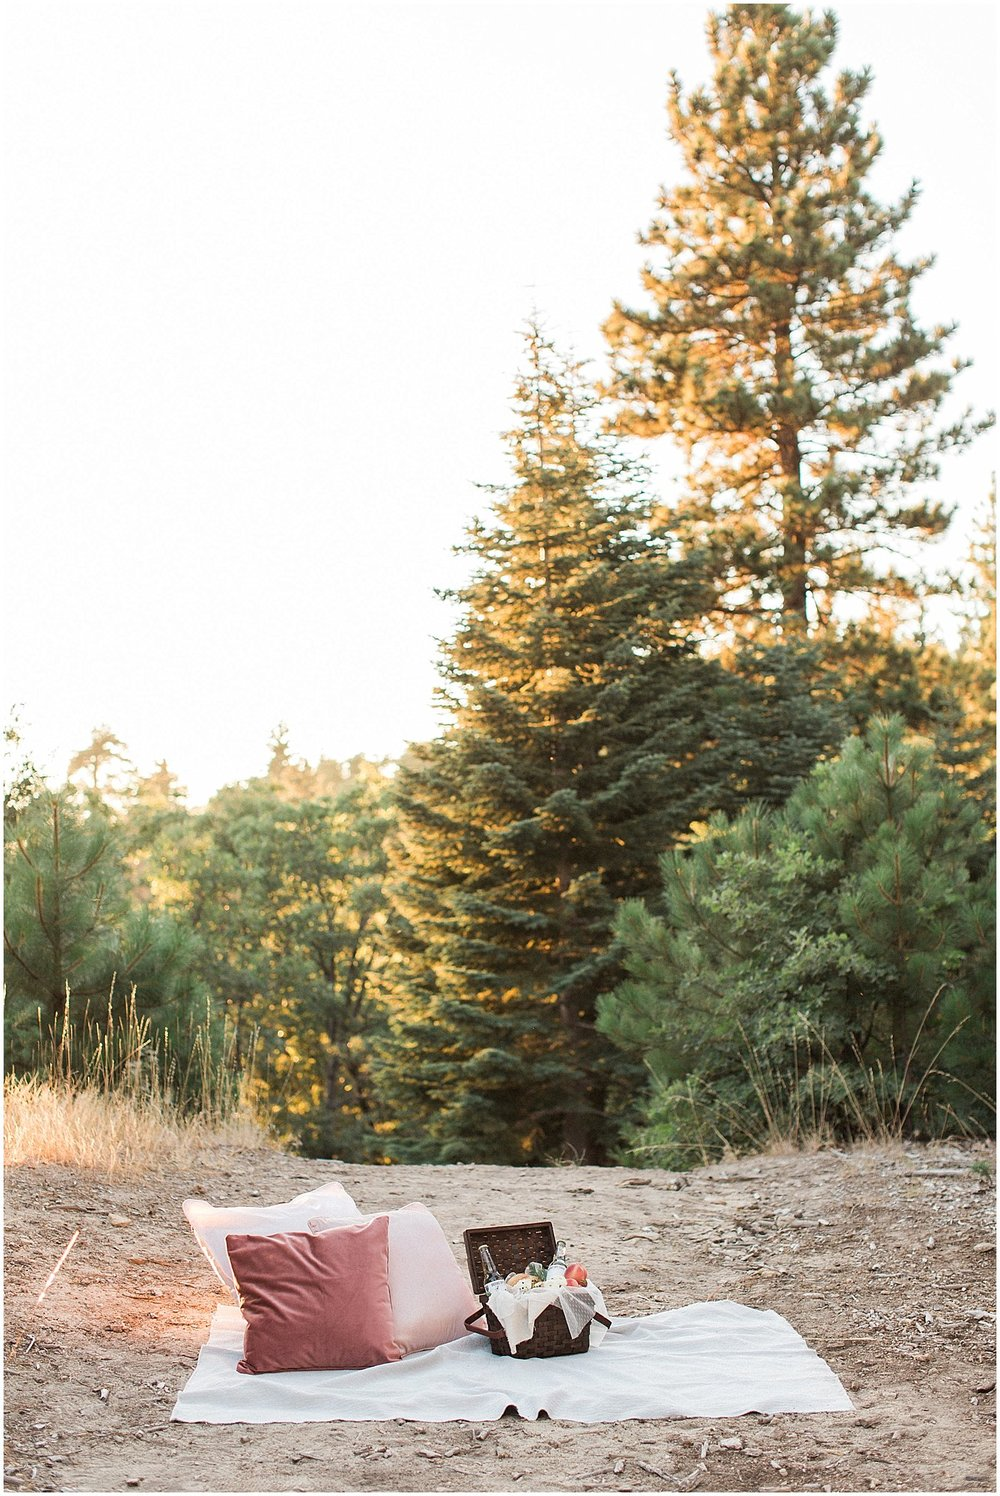 Sunset Picnic with Custom Gift Basket by Gaspara Flora featured on Style Me Pretty | Scottsdale Wedding Planner | Megan Dileen Events